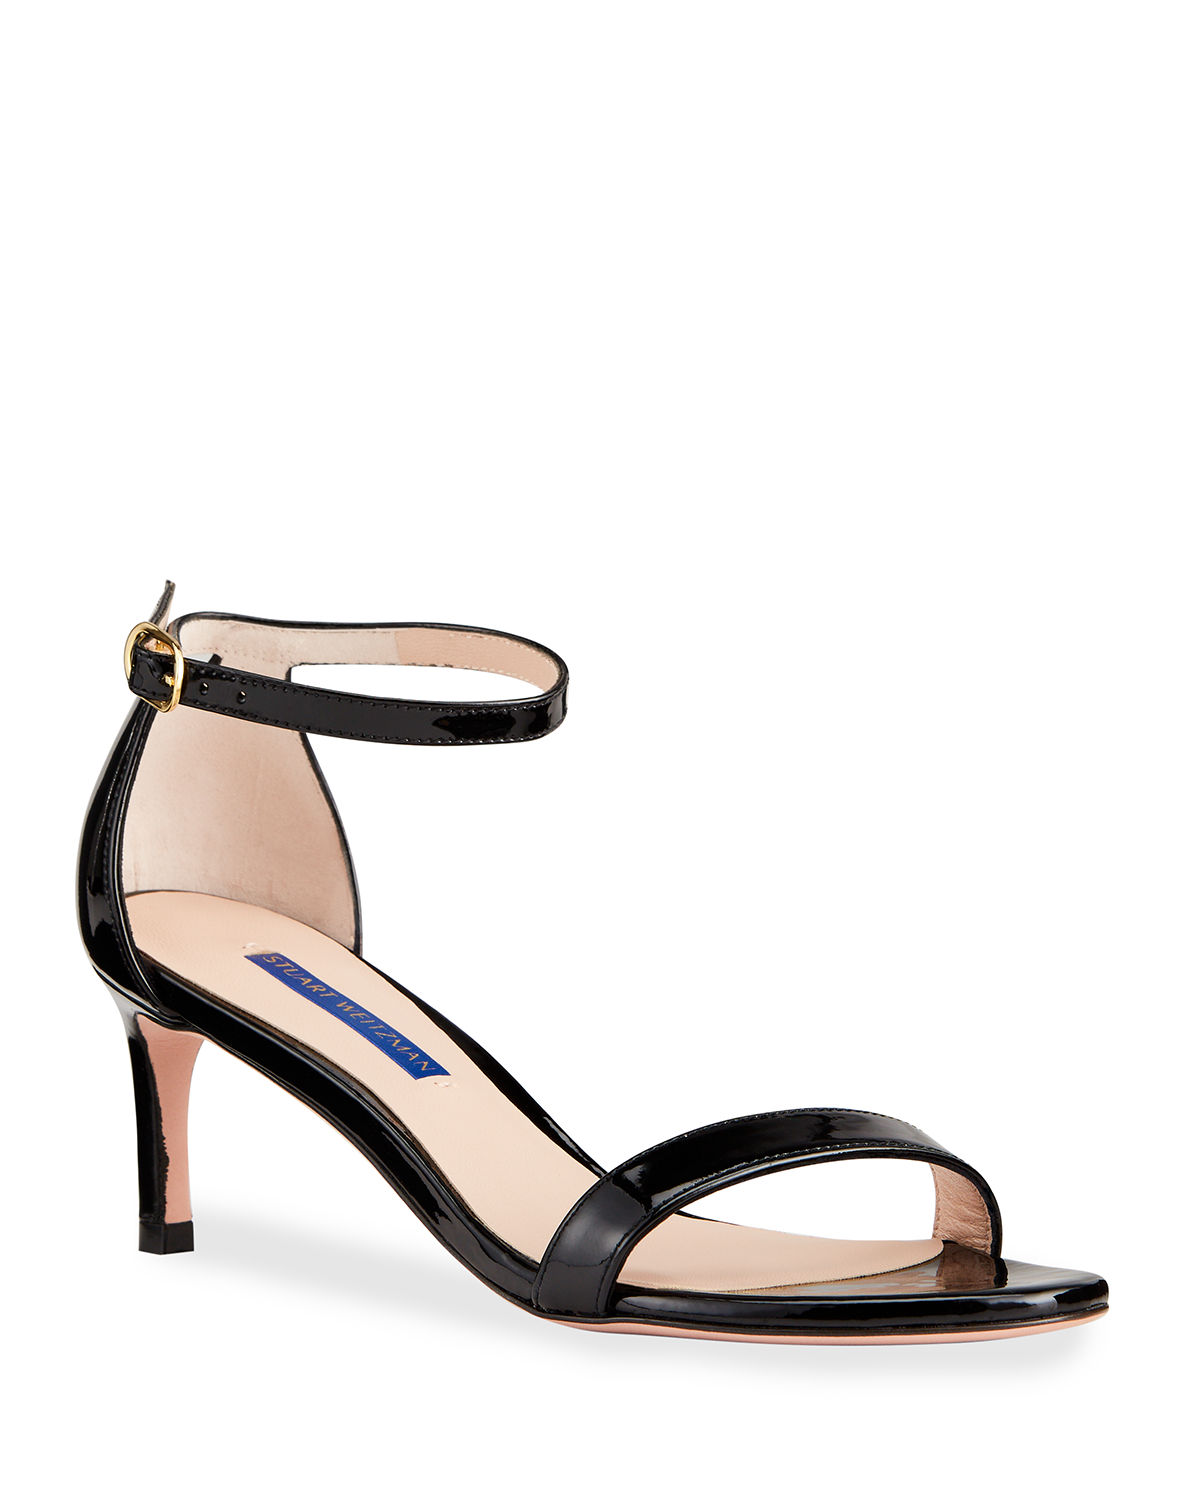 3240d61b5e6 Stuart Weitzman Nunaked Straight Patent Leather Sandals